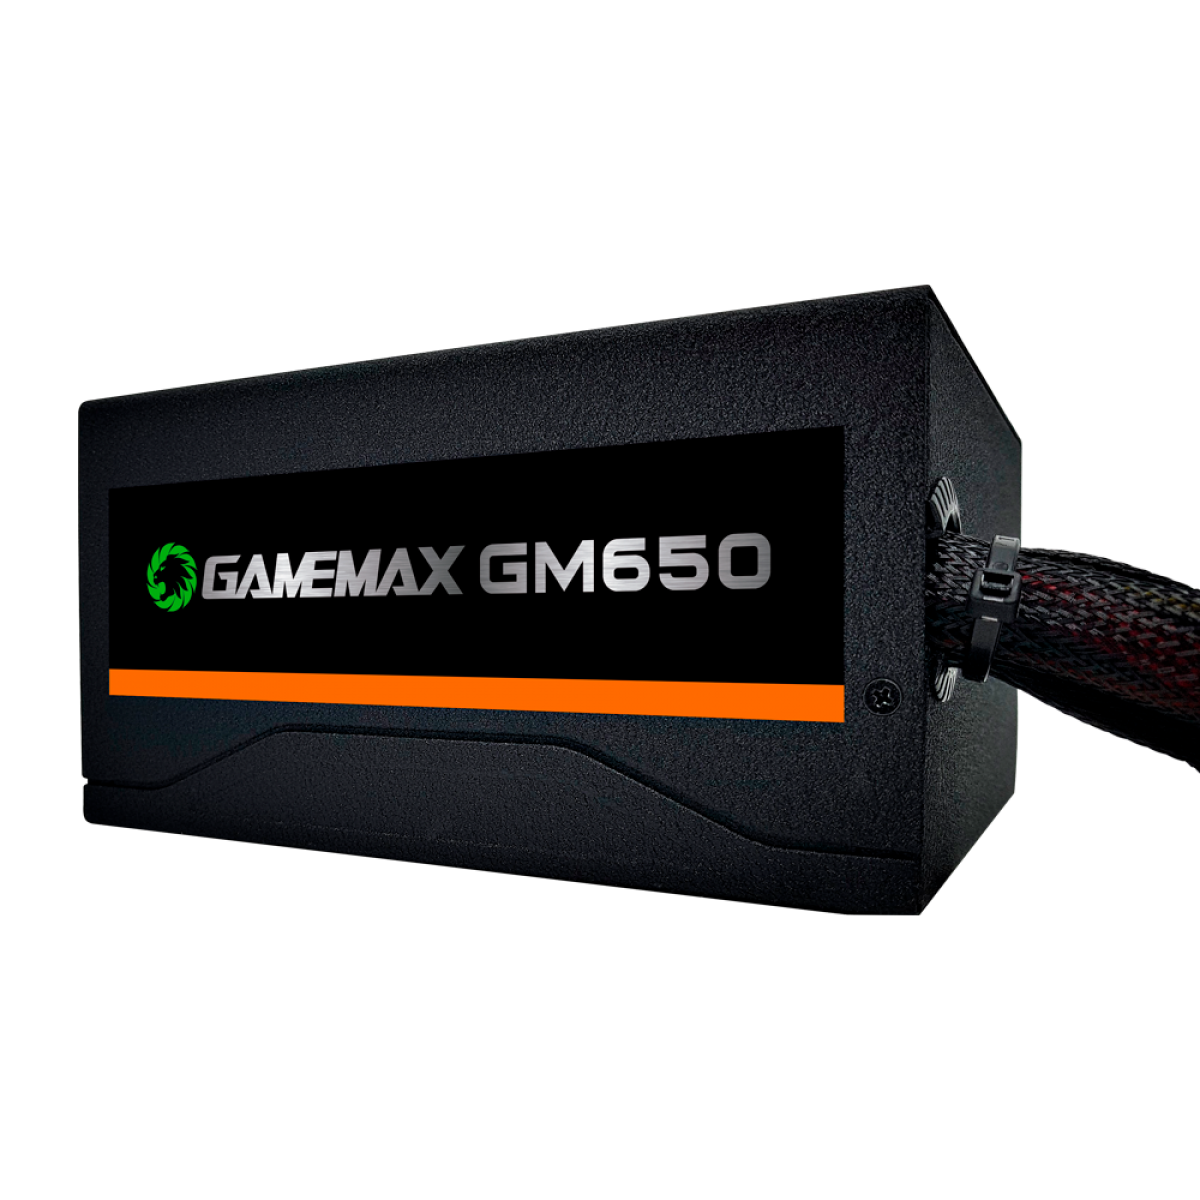 Fonte Gamemax GM650 650W, 80 Plus Bronze, PFC Ativo, Black